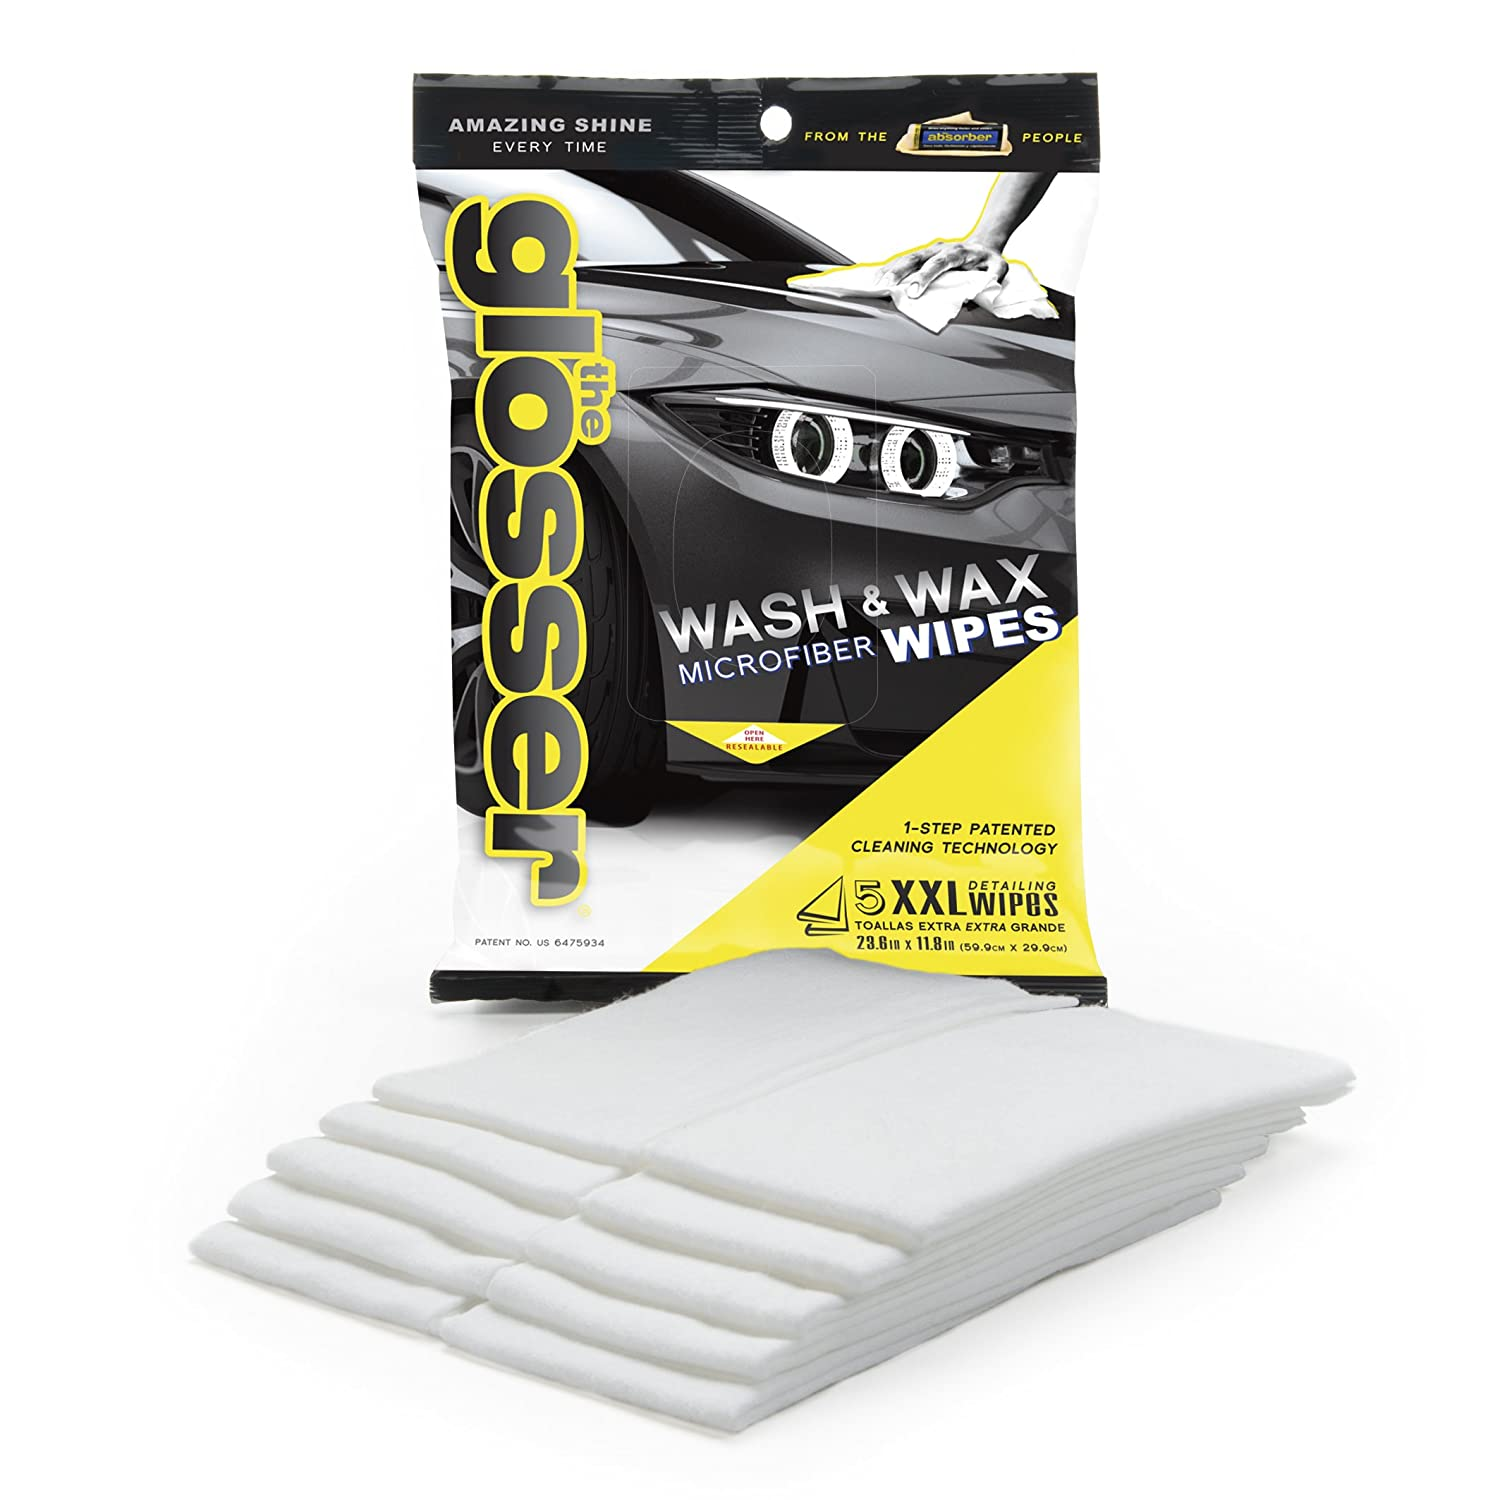 Amazon.com: CleanTools The Drying Glosser Non-Woven Microfiber Detailing Wipes, Case of 6: Automotive